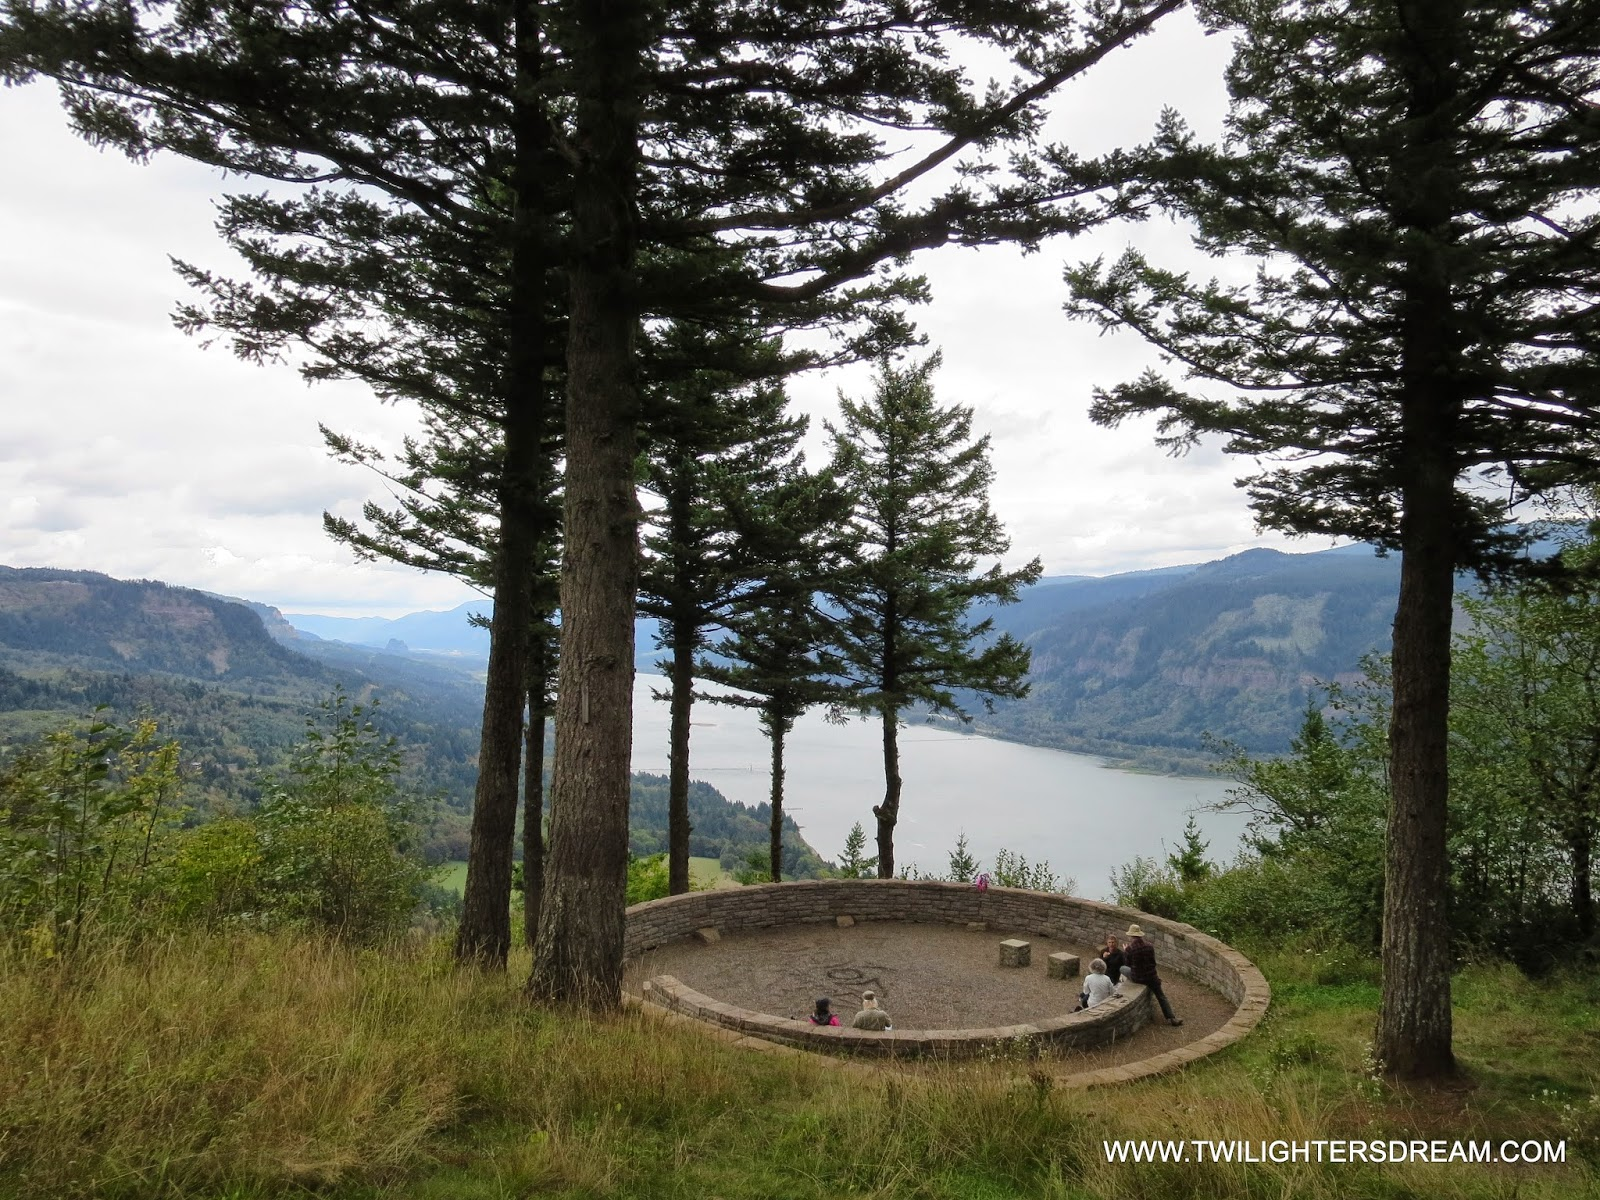 The lookout where filming occurred is located along the Cape Horn Trail. We  used the address listed above in our GPS to get to the closest place